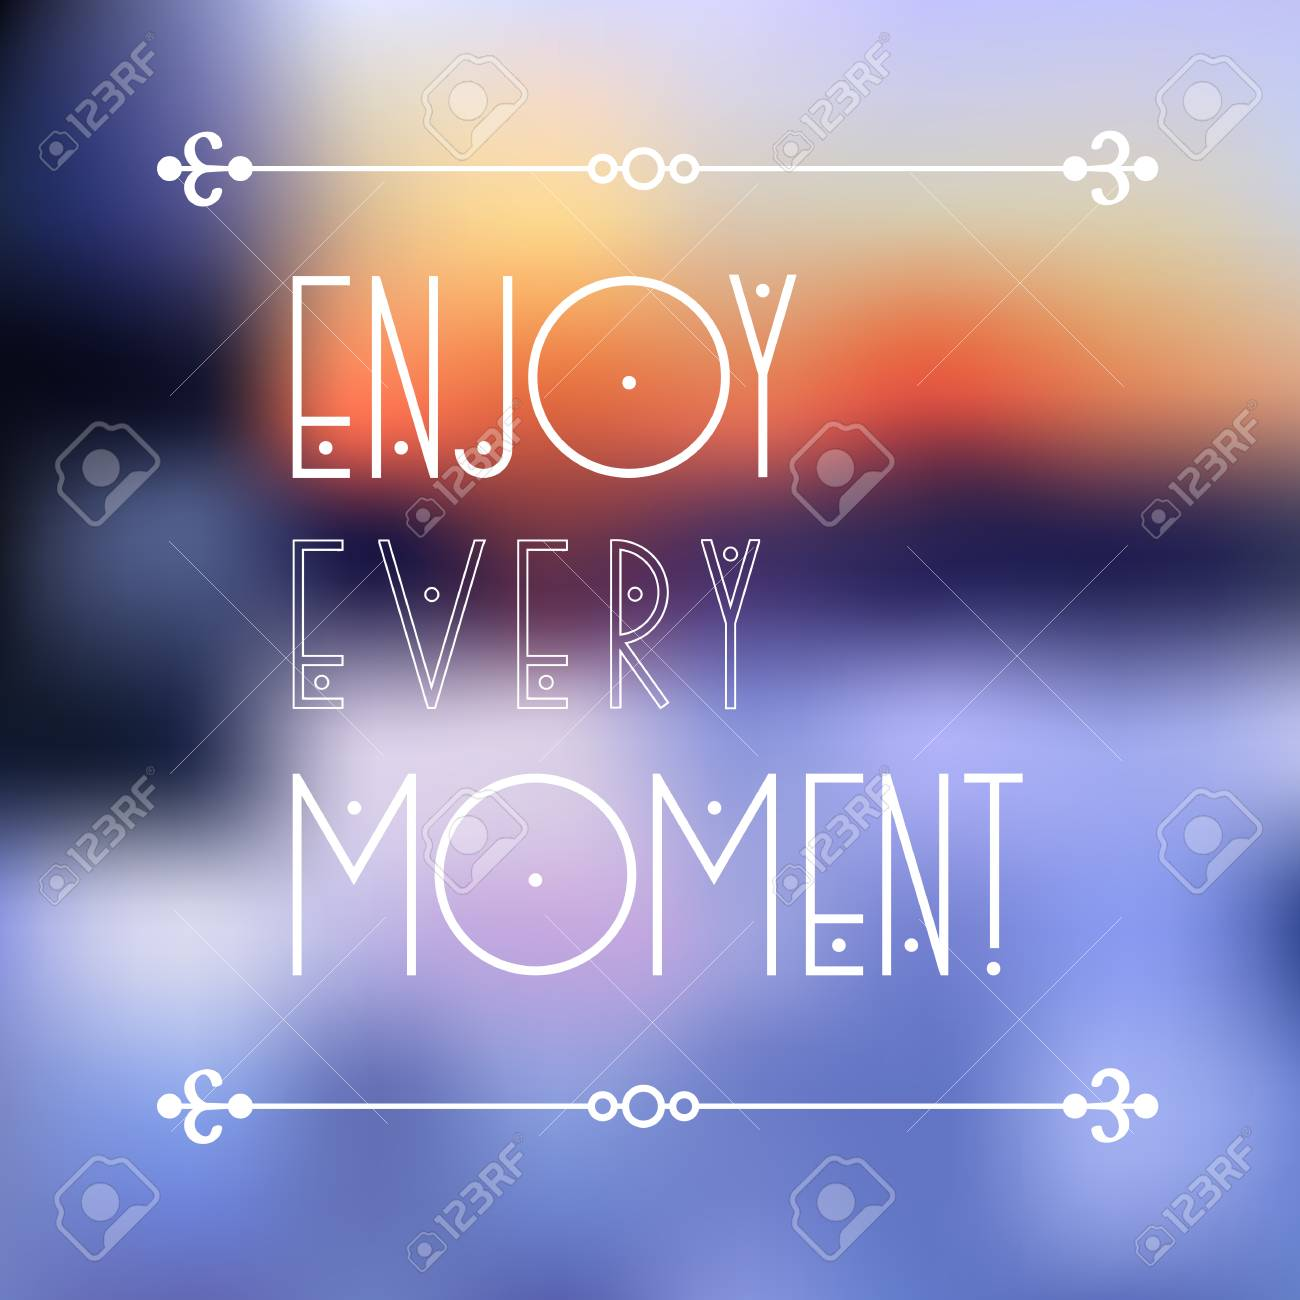 Beautiful Vector Background With Quote   Enjoy Every Moment. Evening Blue  Landscape. Creative Graphic